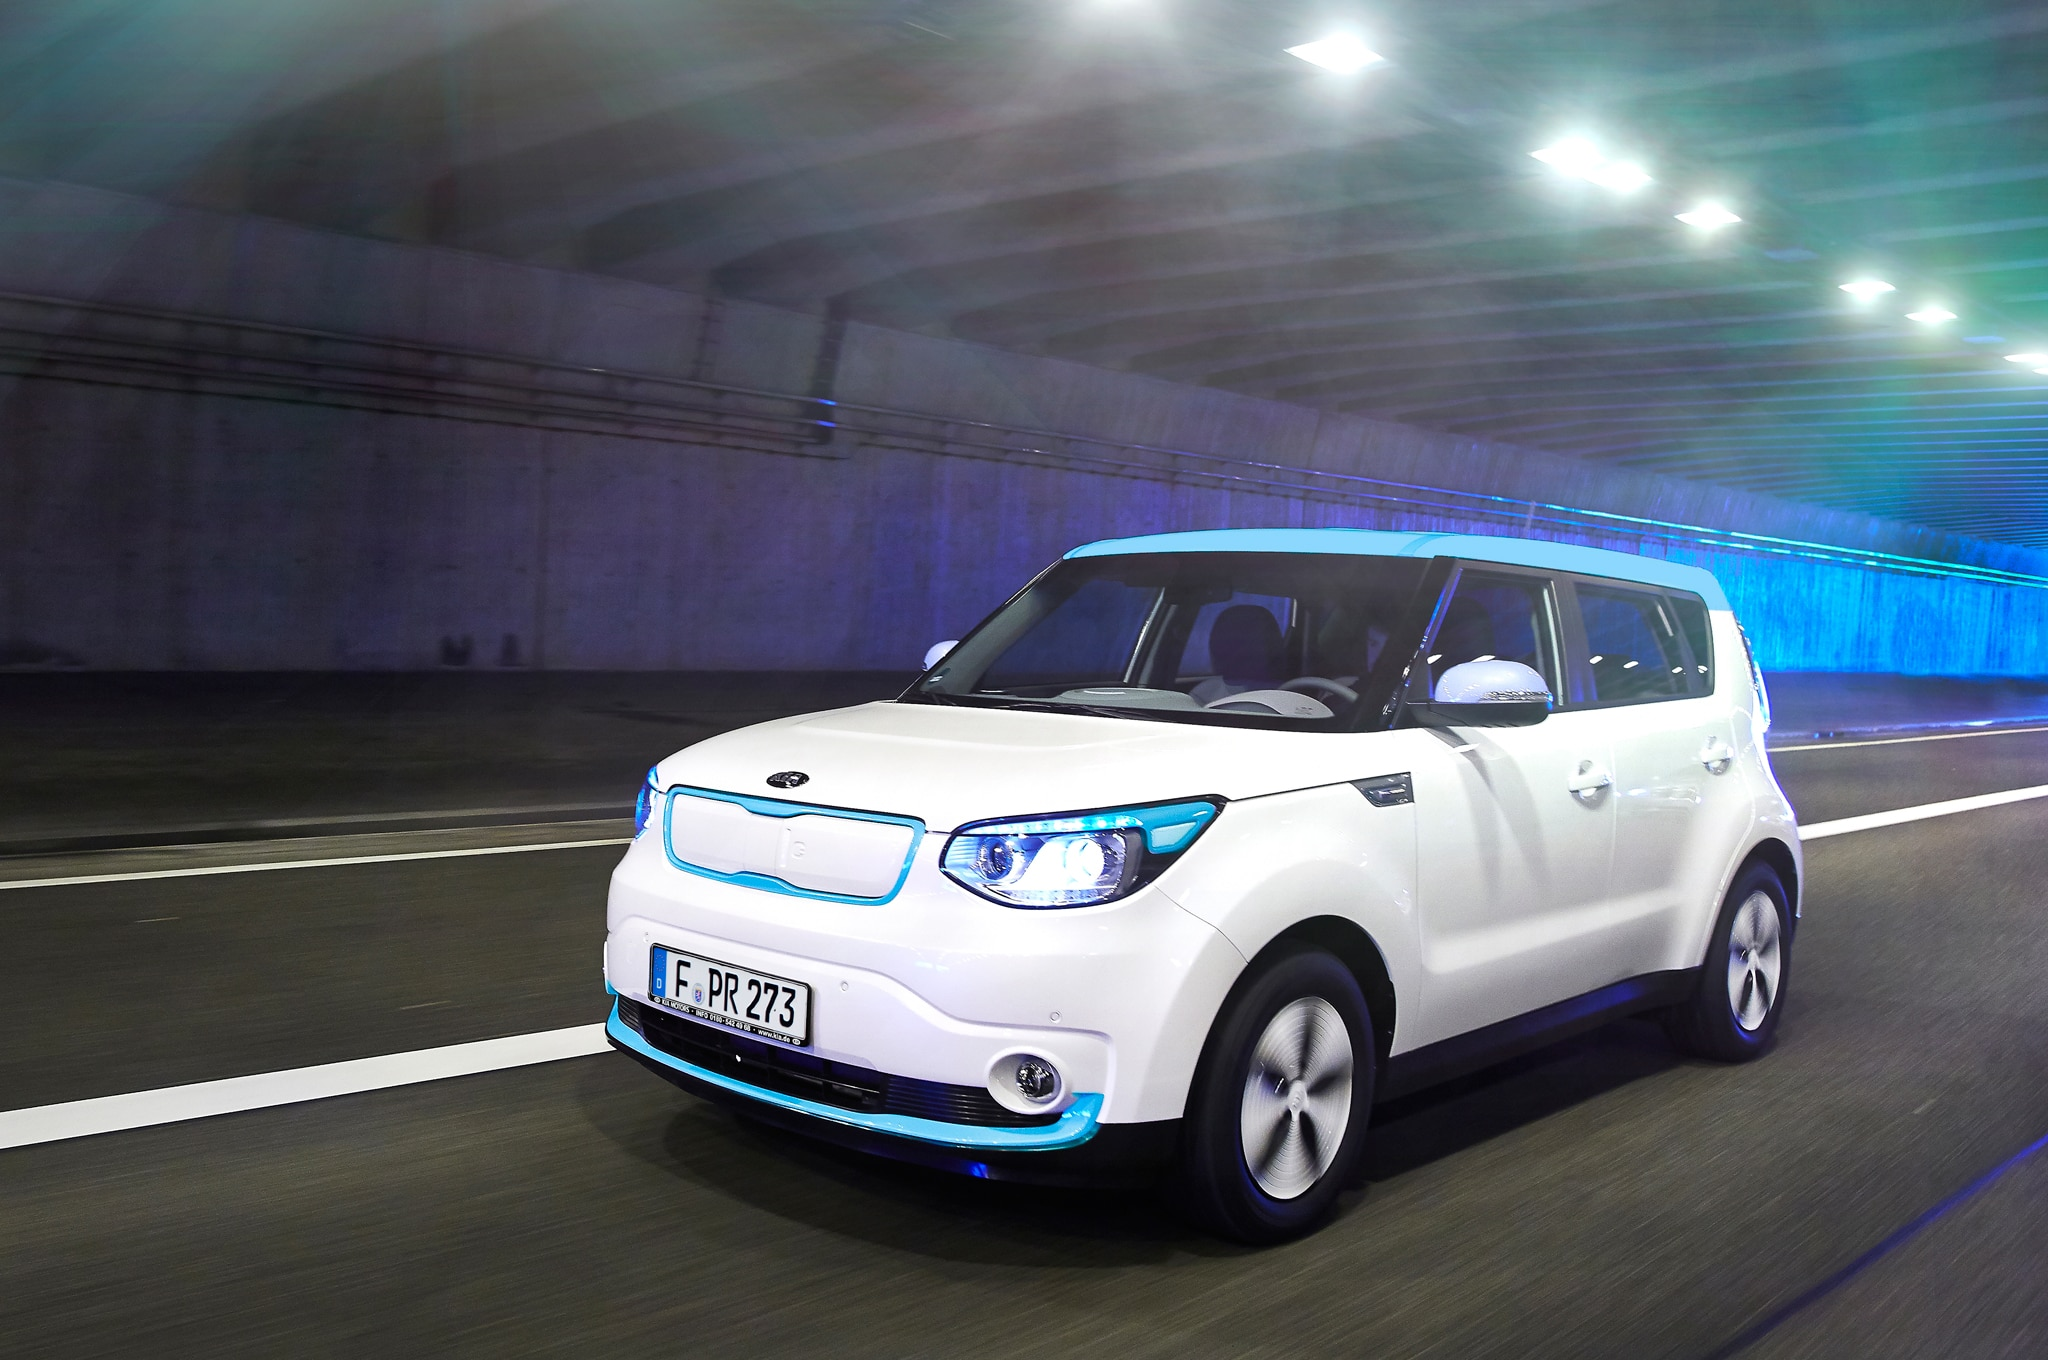 256 000 kia soul soul ev cars recalled for potential steering loss. Black Bedroom Furniture Sets. Home Design Ideas